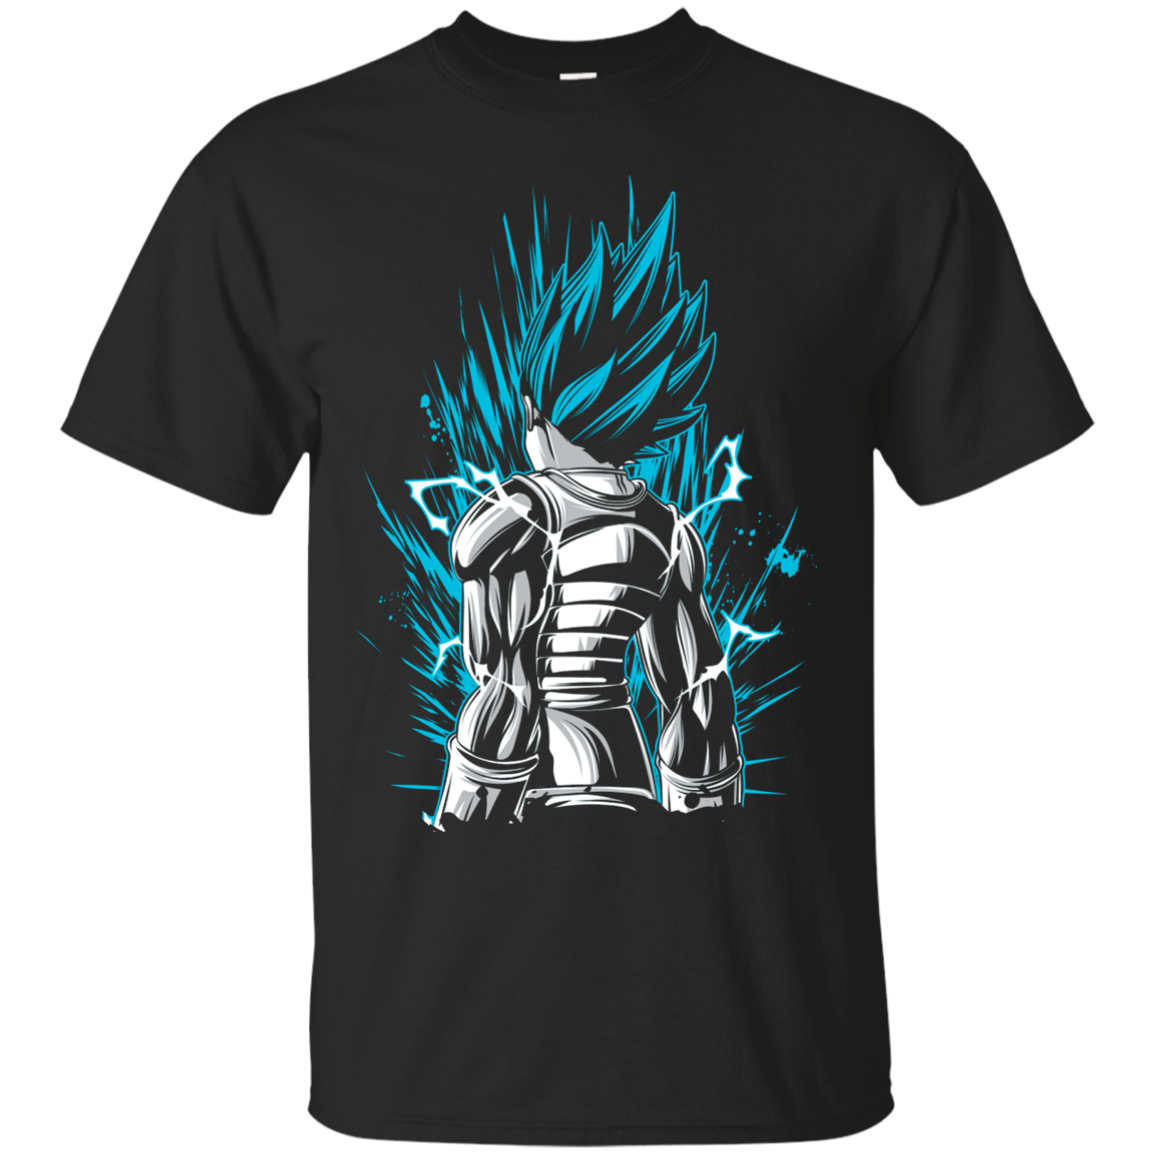 Super Saiyan God Blue Vegeta T Shirt Sweatshirt T Shirt